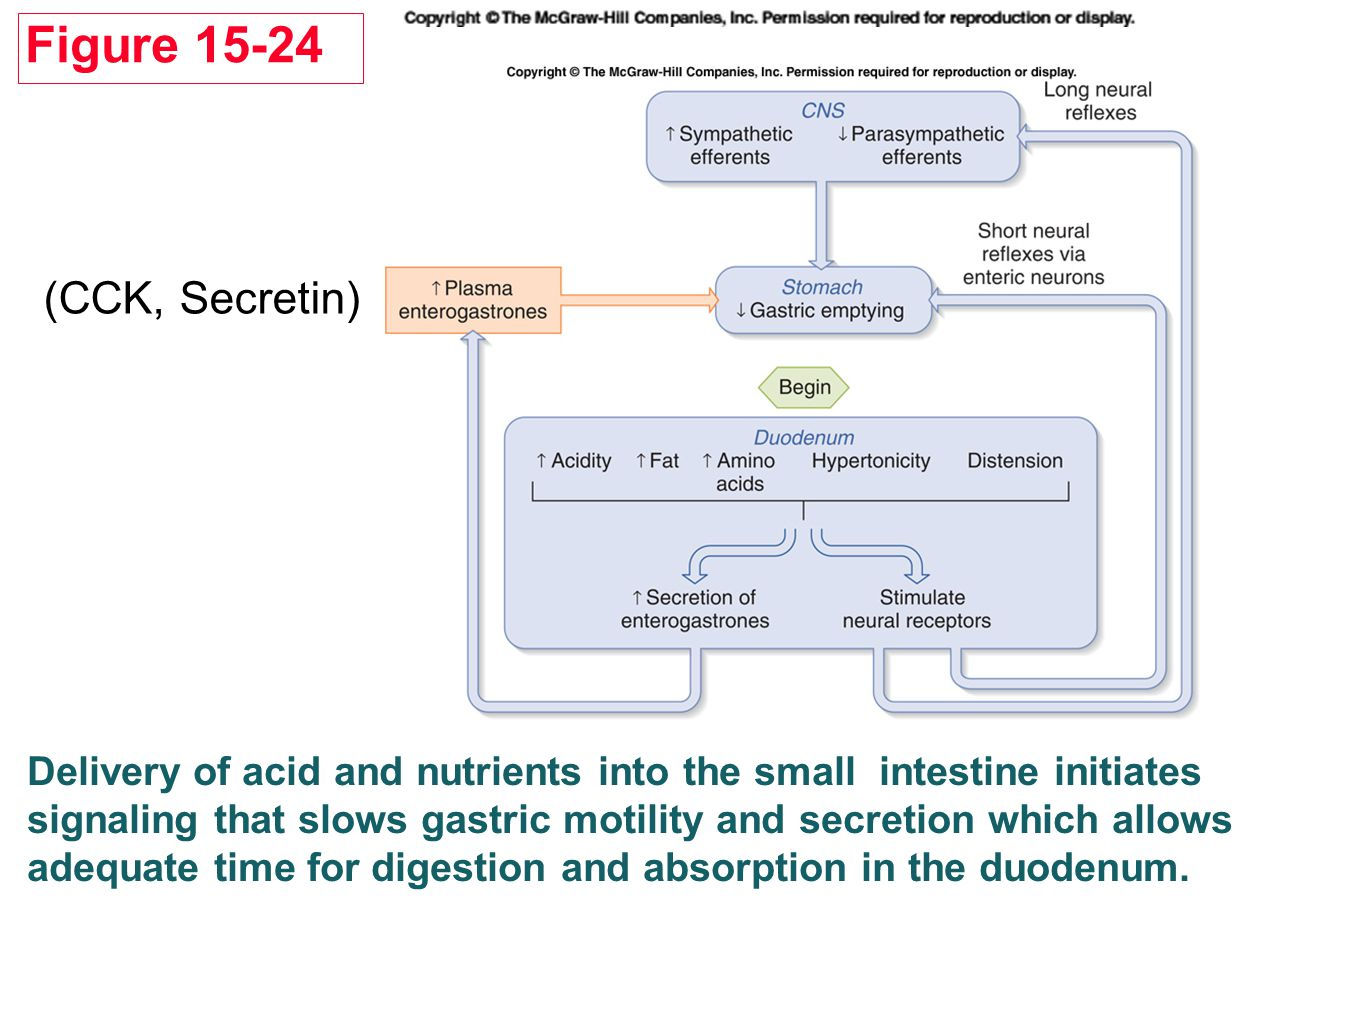 Delivery of acid and nutrients into the small intestine initiates signaling that slows gastric motility and secretion which allows adequate time for digestion and absorption in the duodenum.